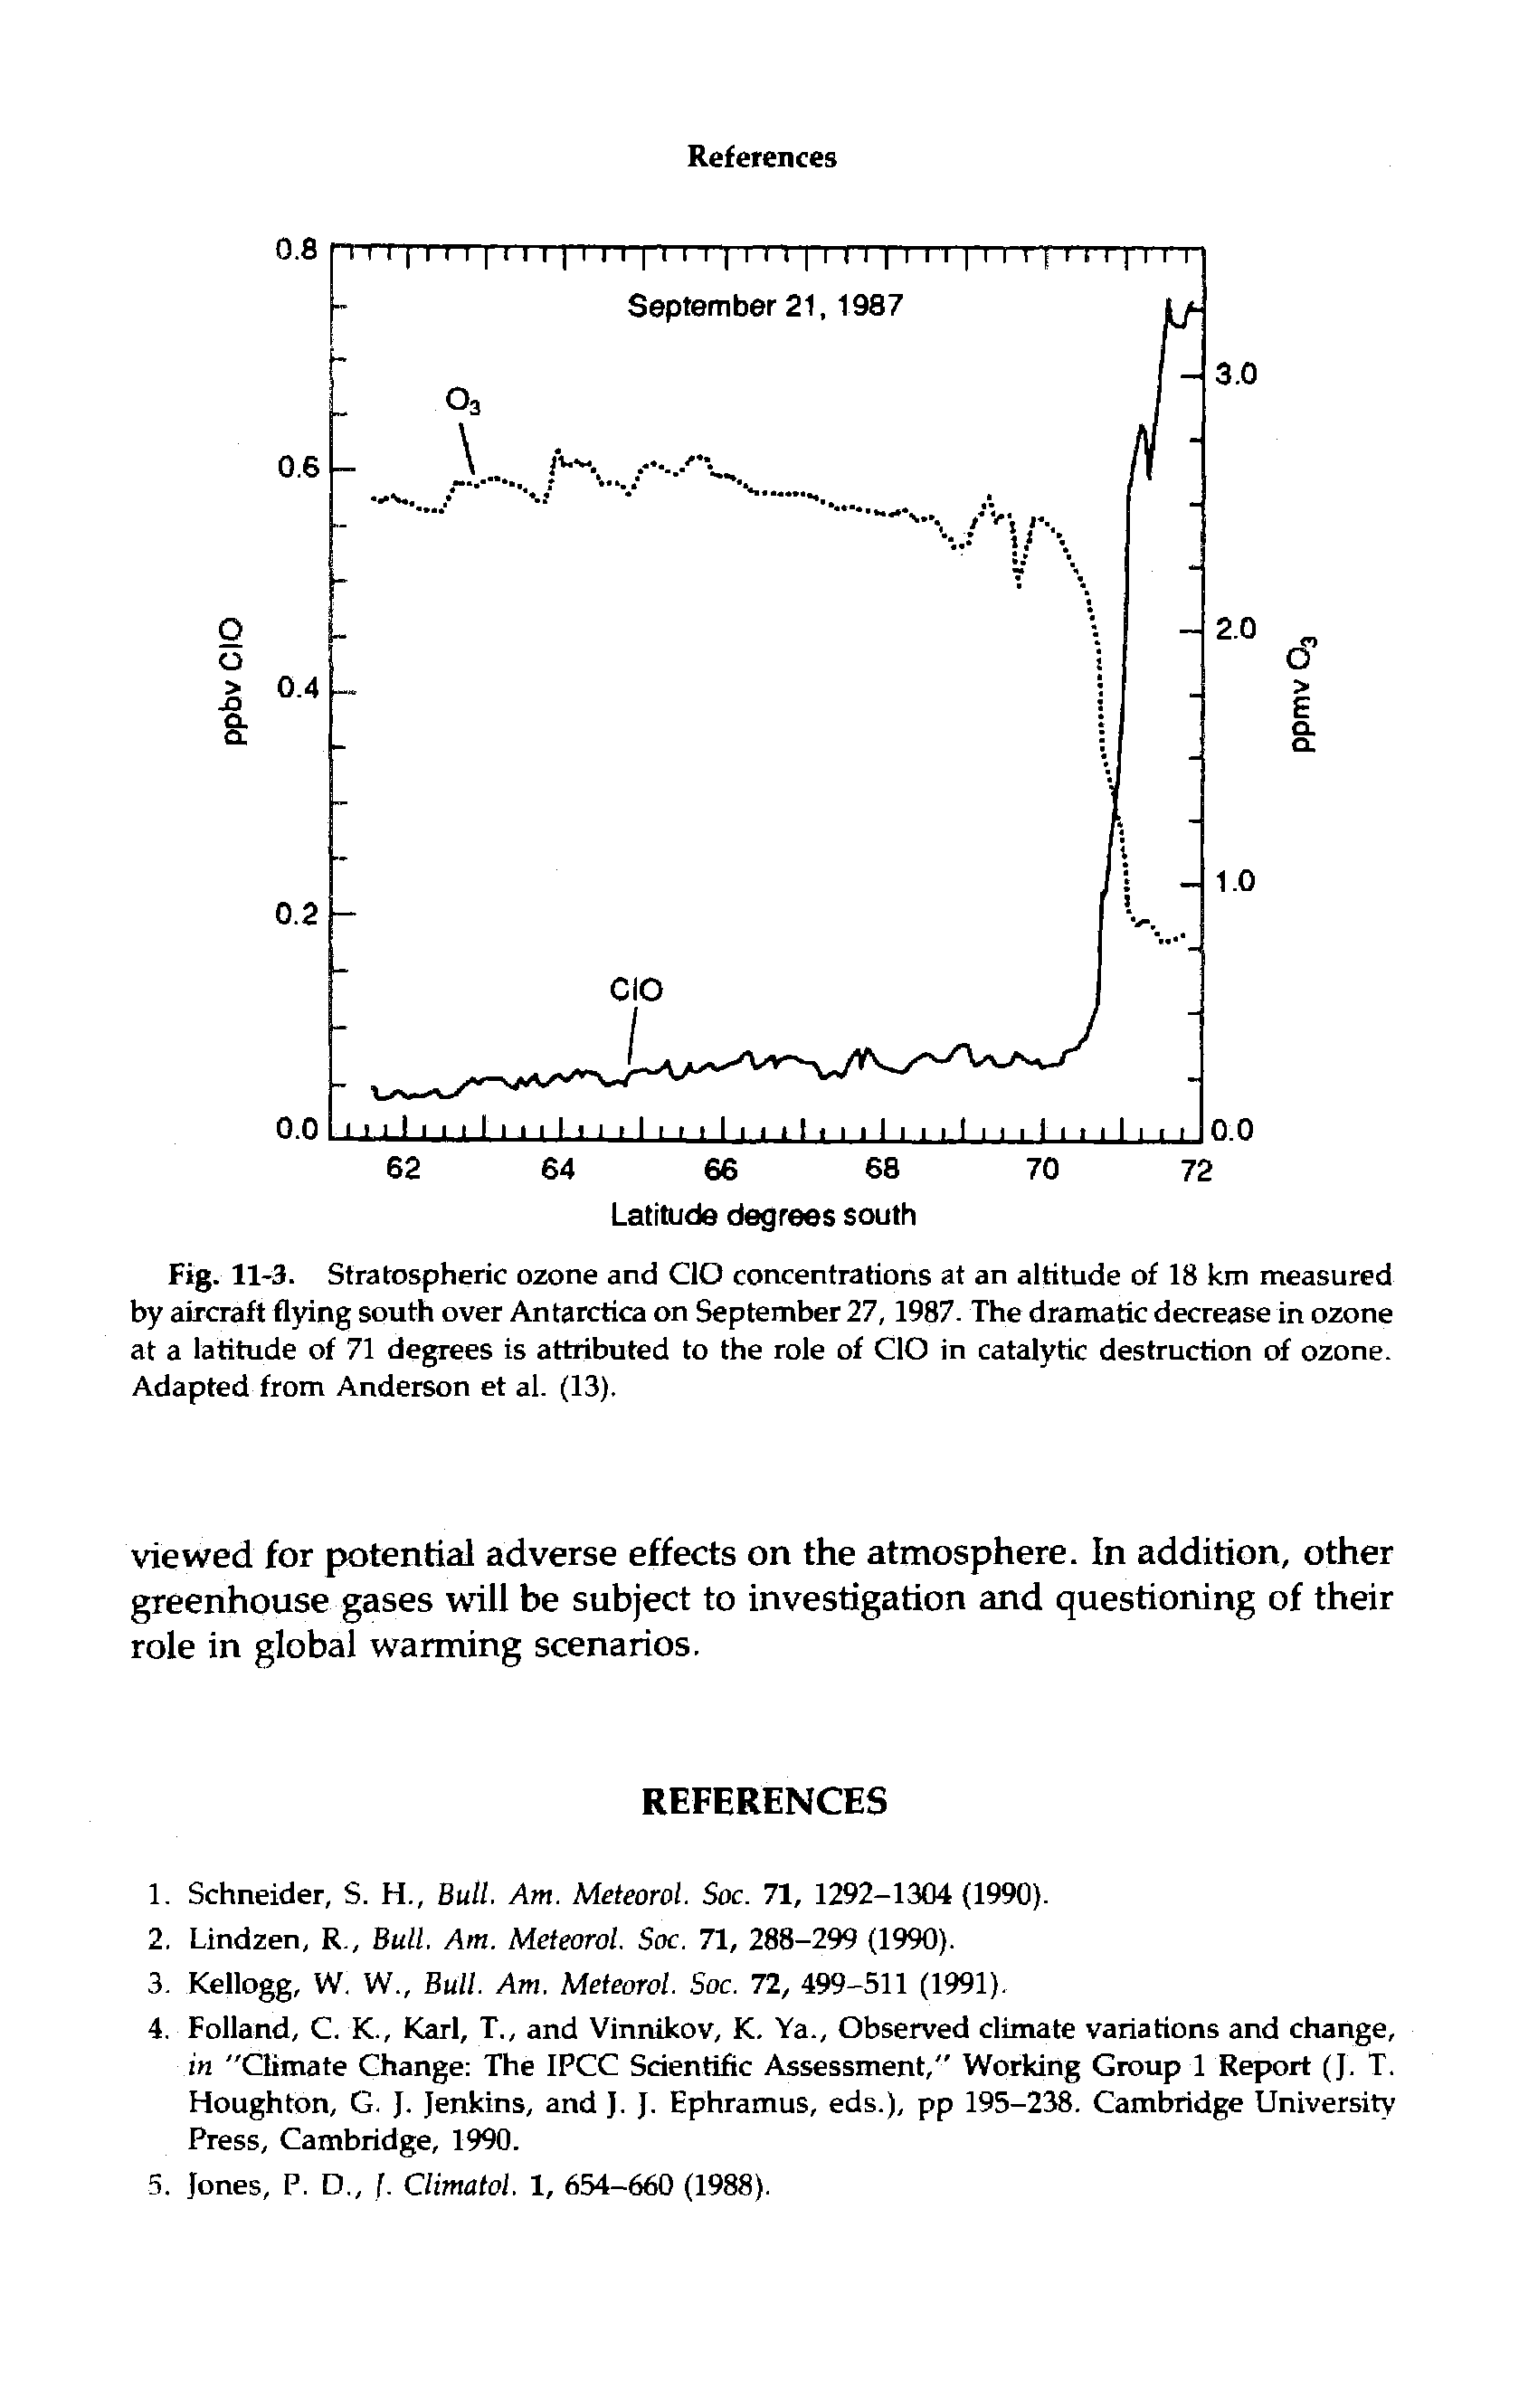 "Fig. 11-3. Stratospheric ozone and CIO concentrations at an altitude of 18 km measured by aircraft flying south over Antarctica on September 27,1987. The dramatic decrease in ozone at a latitude of 71 degrees is attributed to the role of CIO in <a href=""/info/catalytic_destruction"">catalytic destruction</a> of ozone. Adapted from Anderson et al. (13)."